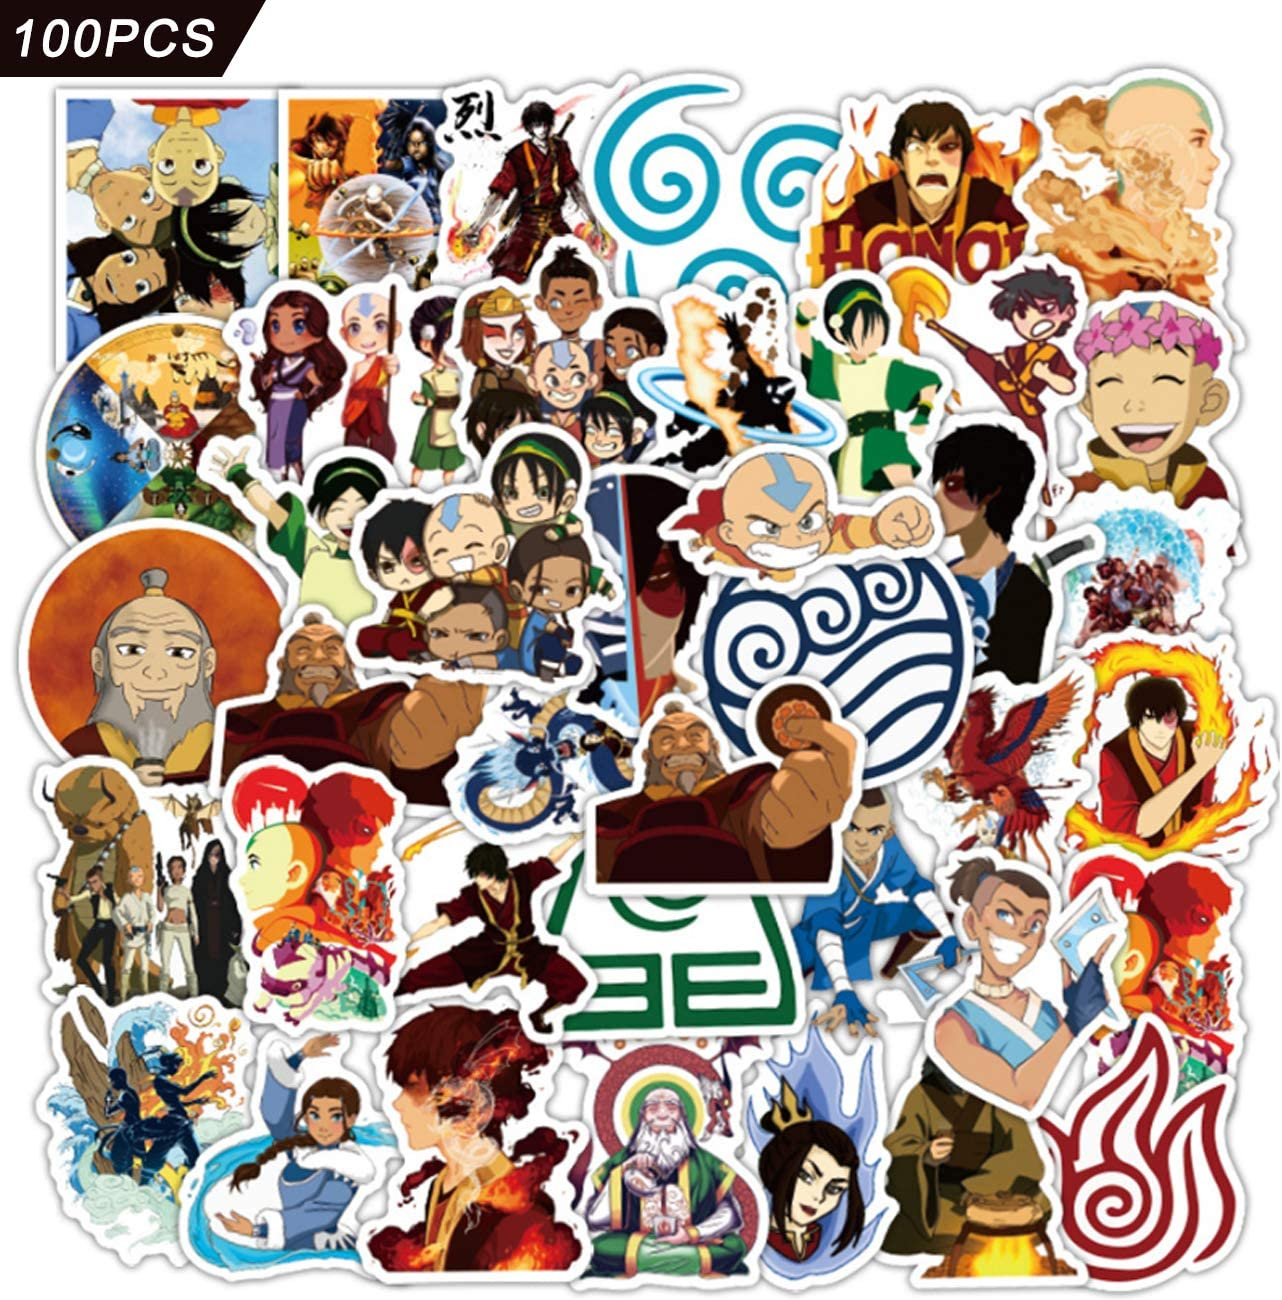 Avatar The Last Airbender Stickers 100pcs Manufacturer Directly managed store regenerated product Movie Lnight